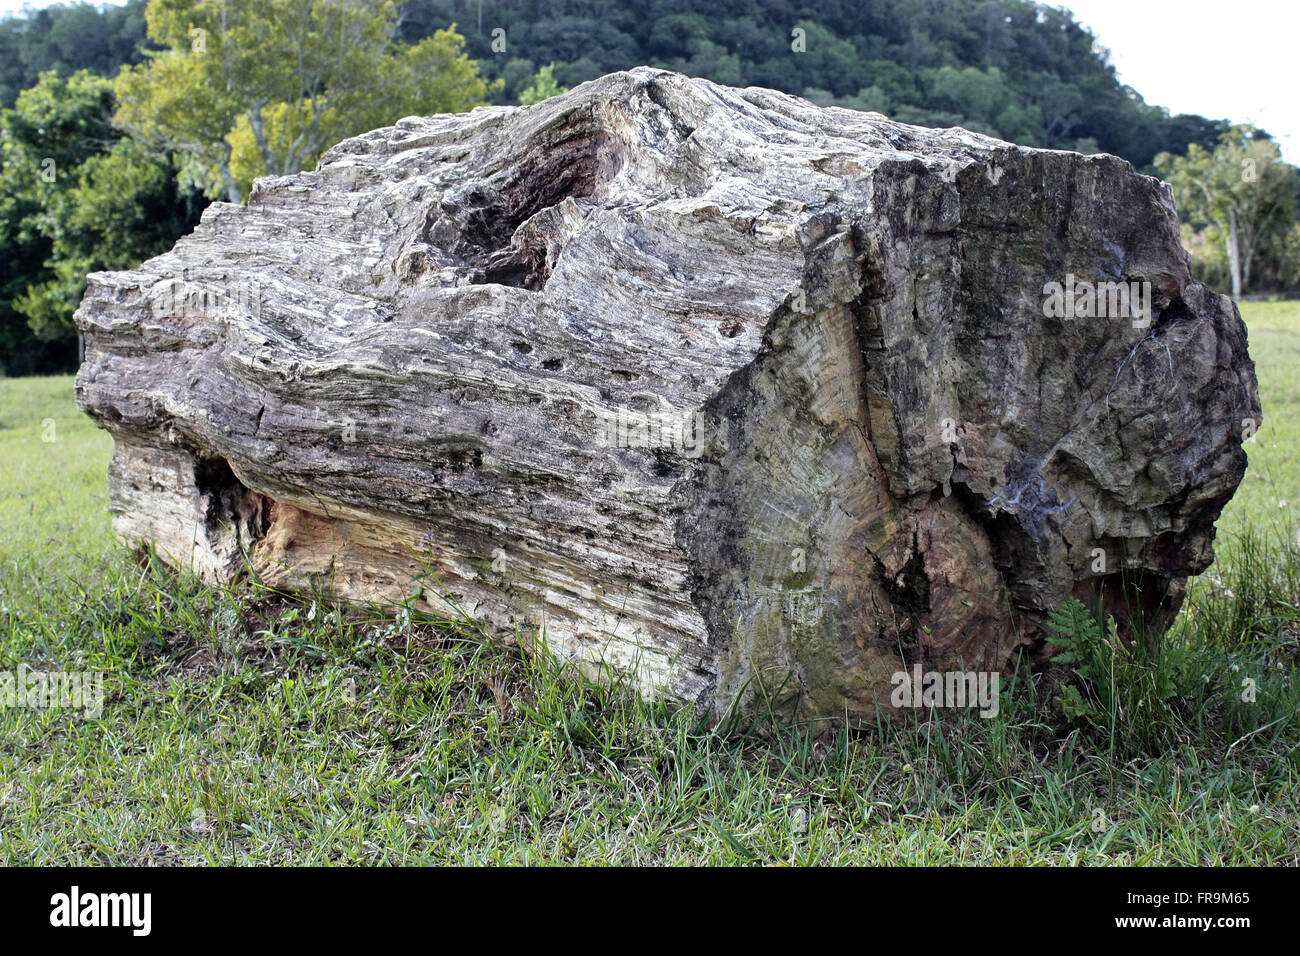 Fossilized tree trunk - petrified - dated c. - Stock Image